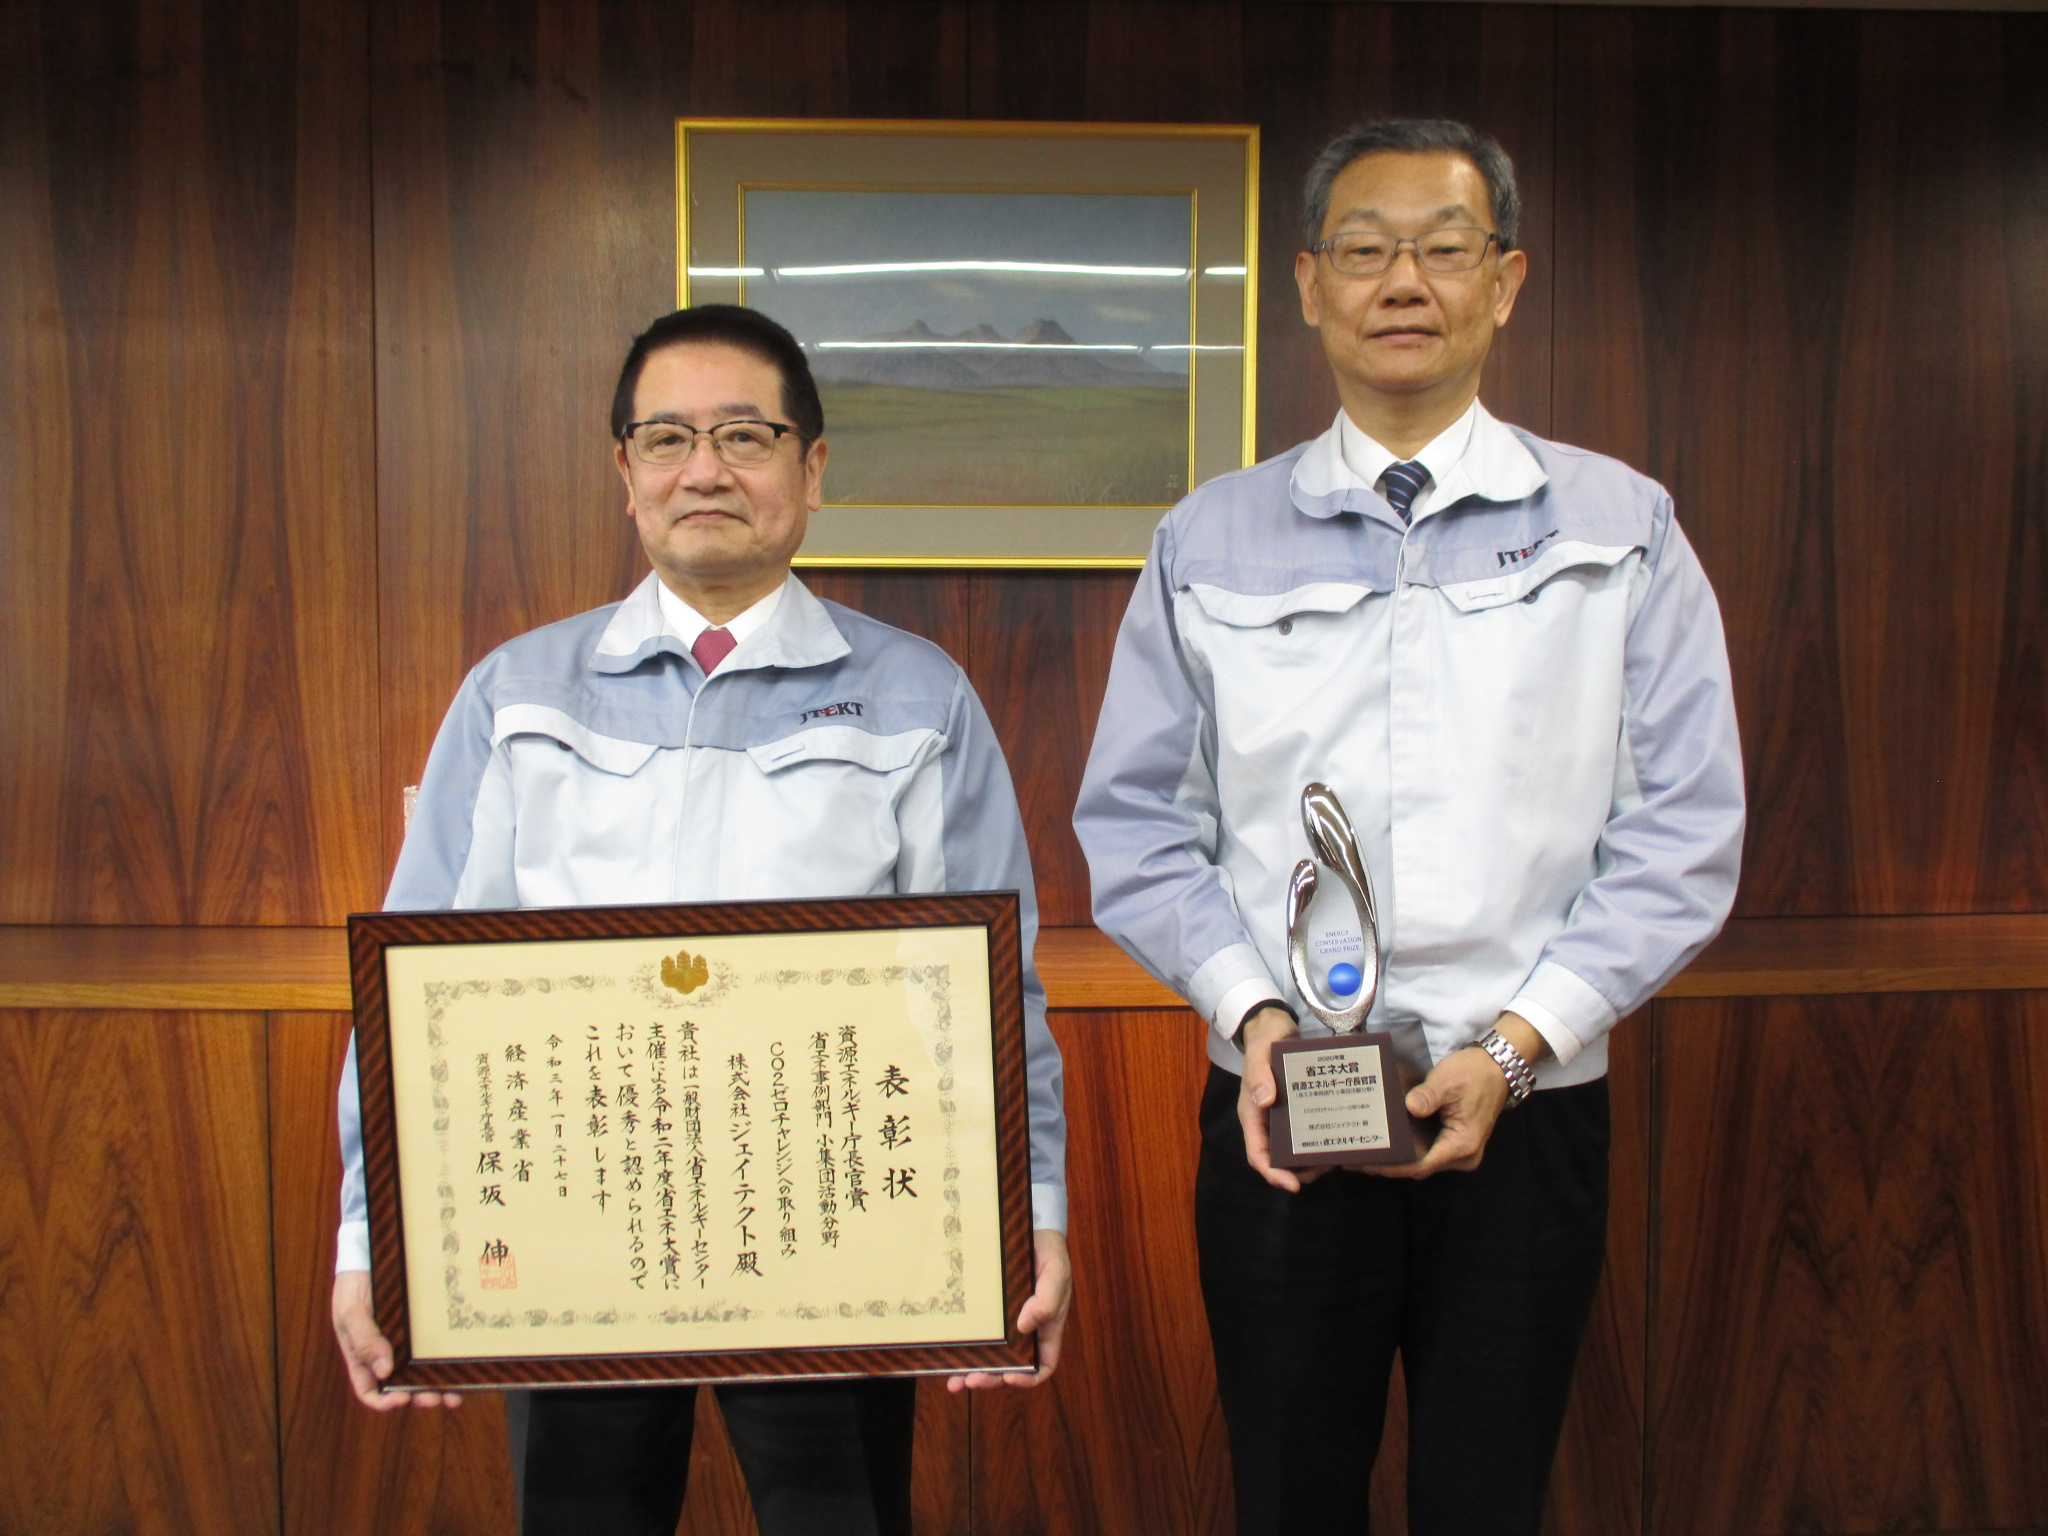 Left: Sato(President), Right: Sano(Senior Executive Officer)